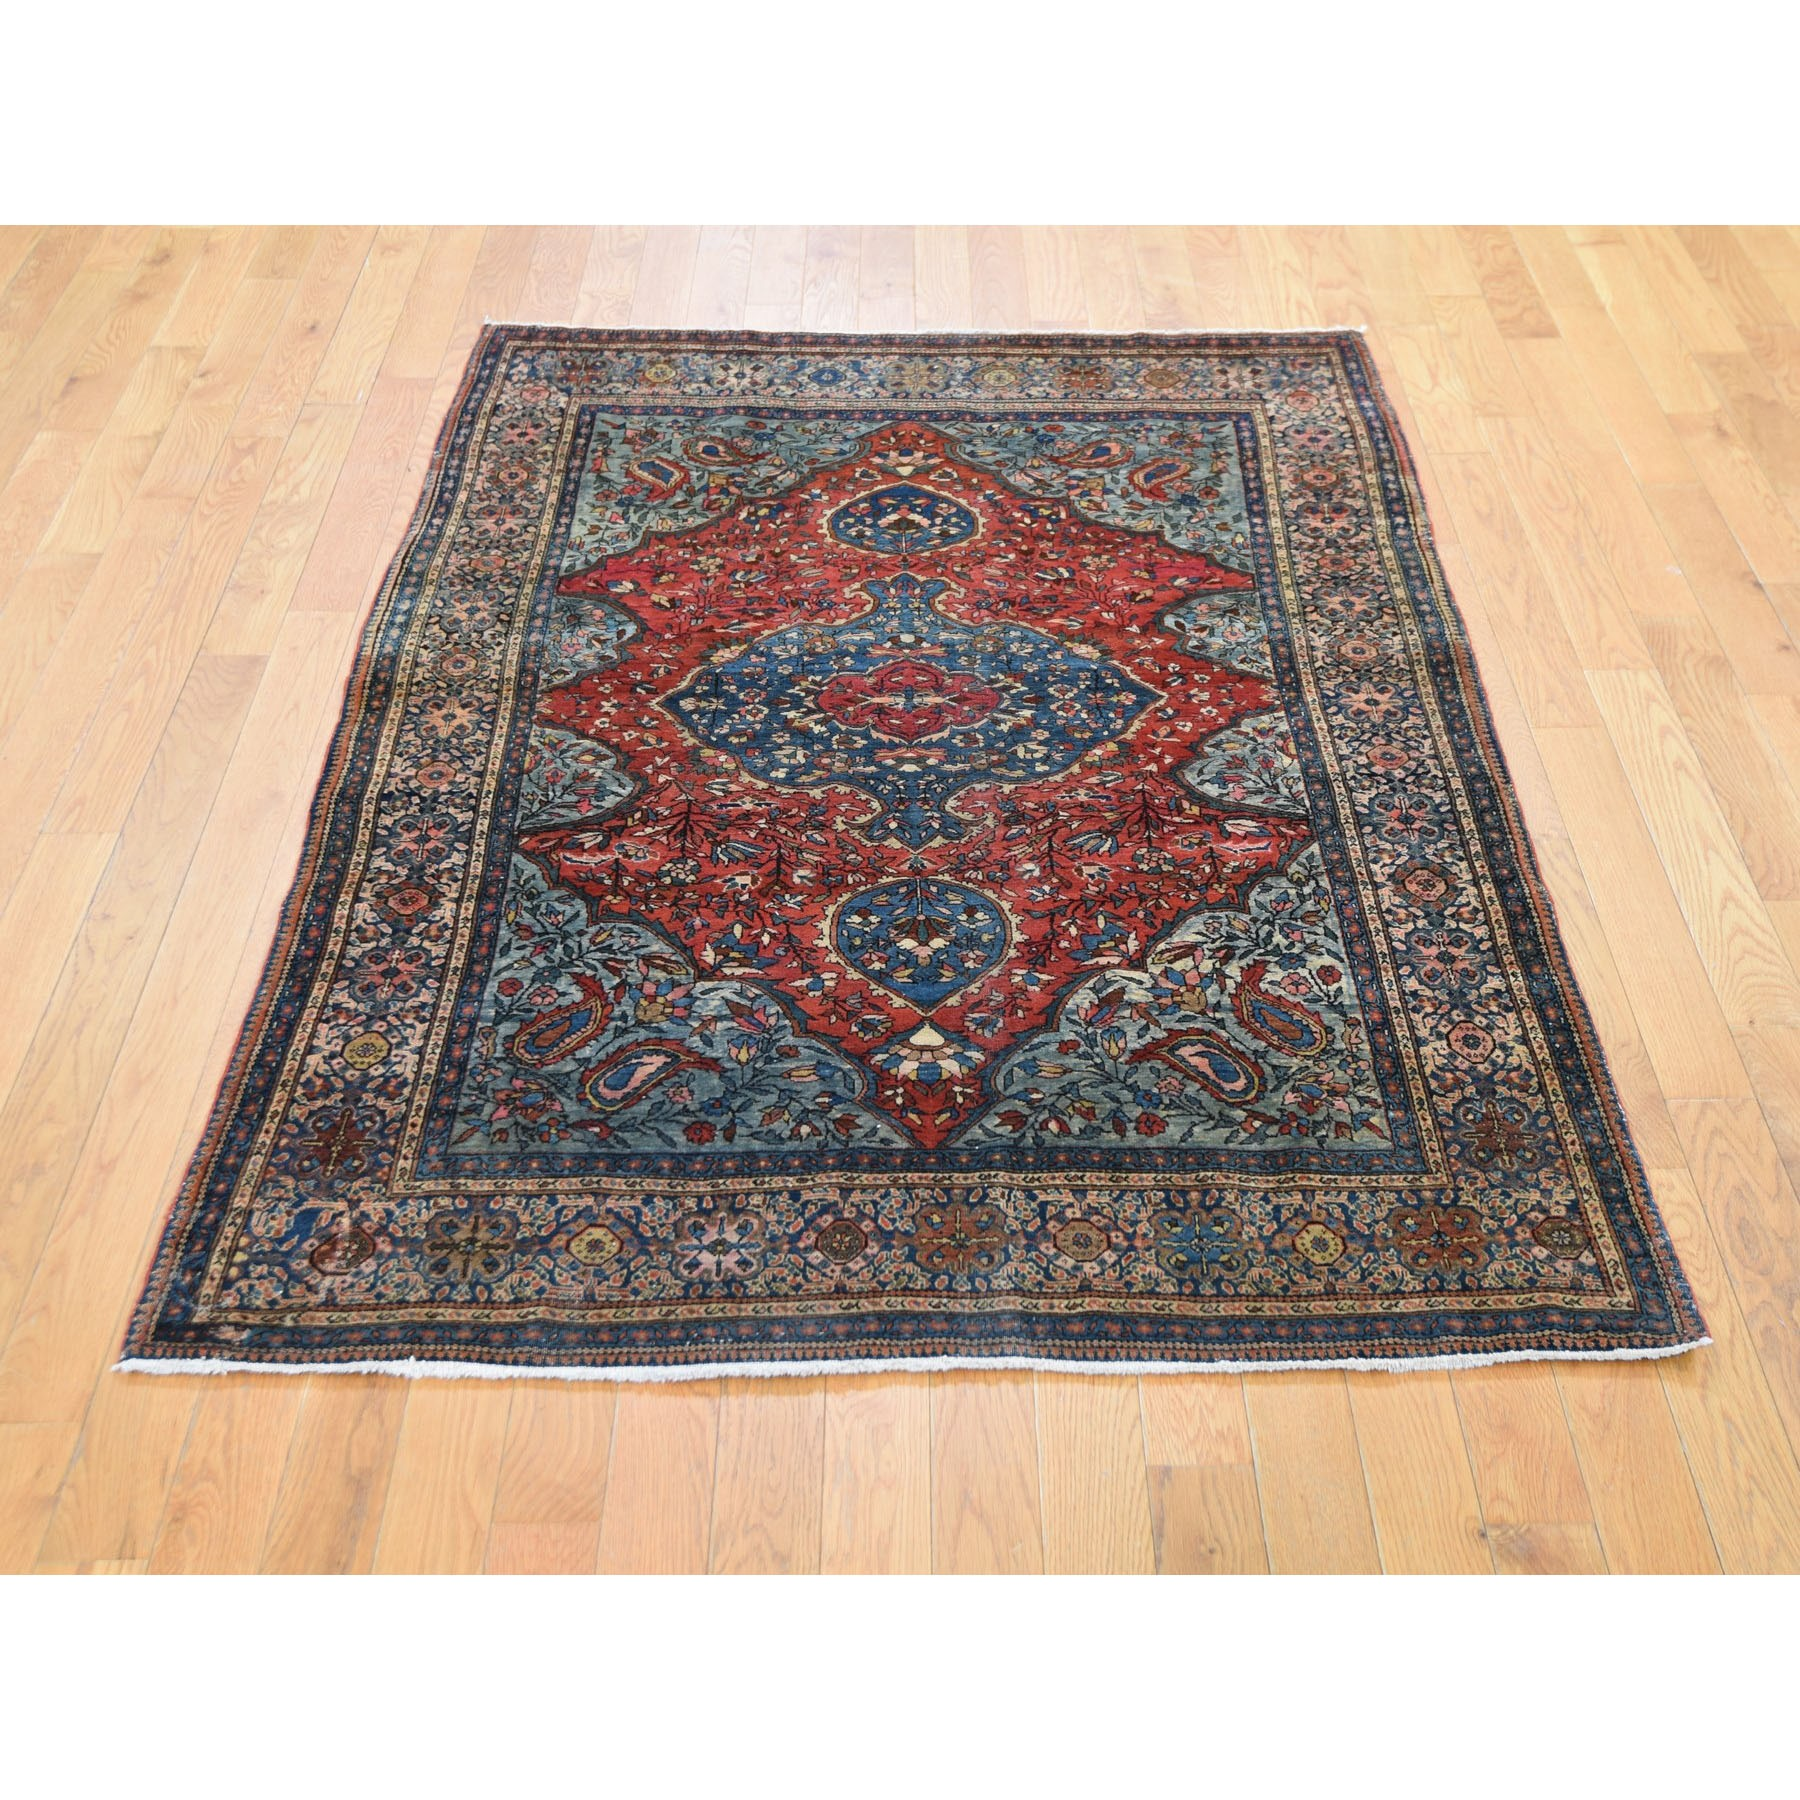 """4'2""""x6'6"""" Red Antique  Persian Sarouk Fereghan Good Condition Soft Hand Knotted Fine Oriental Rug"""